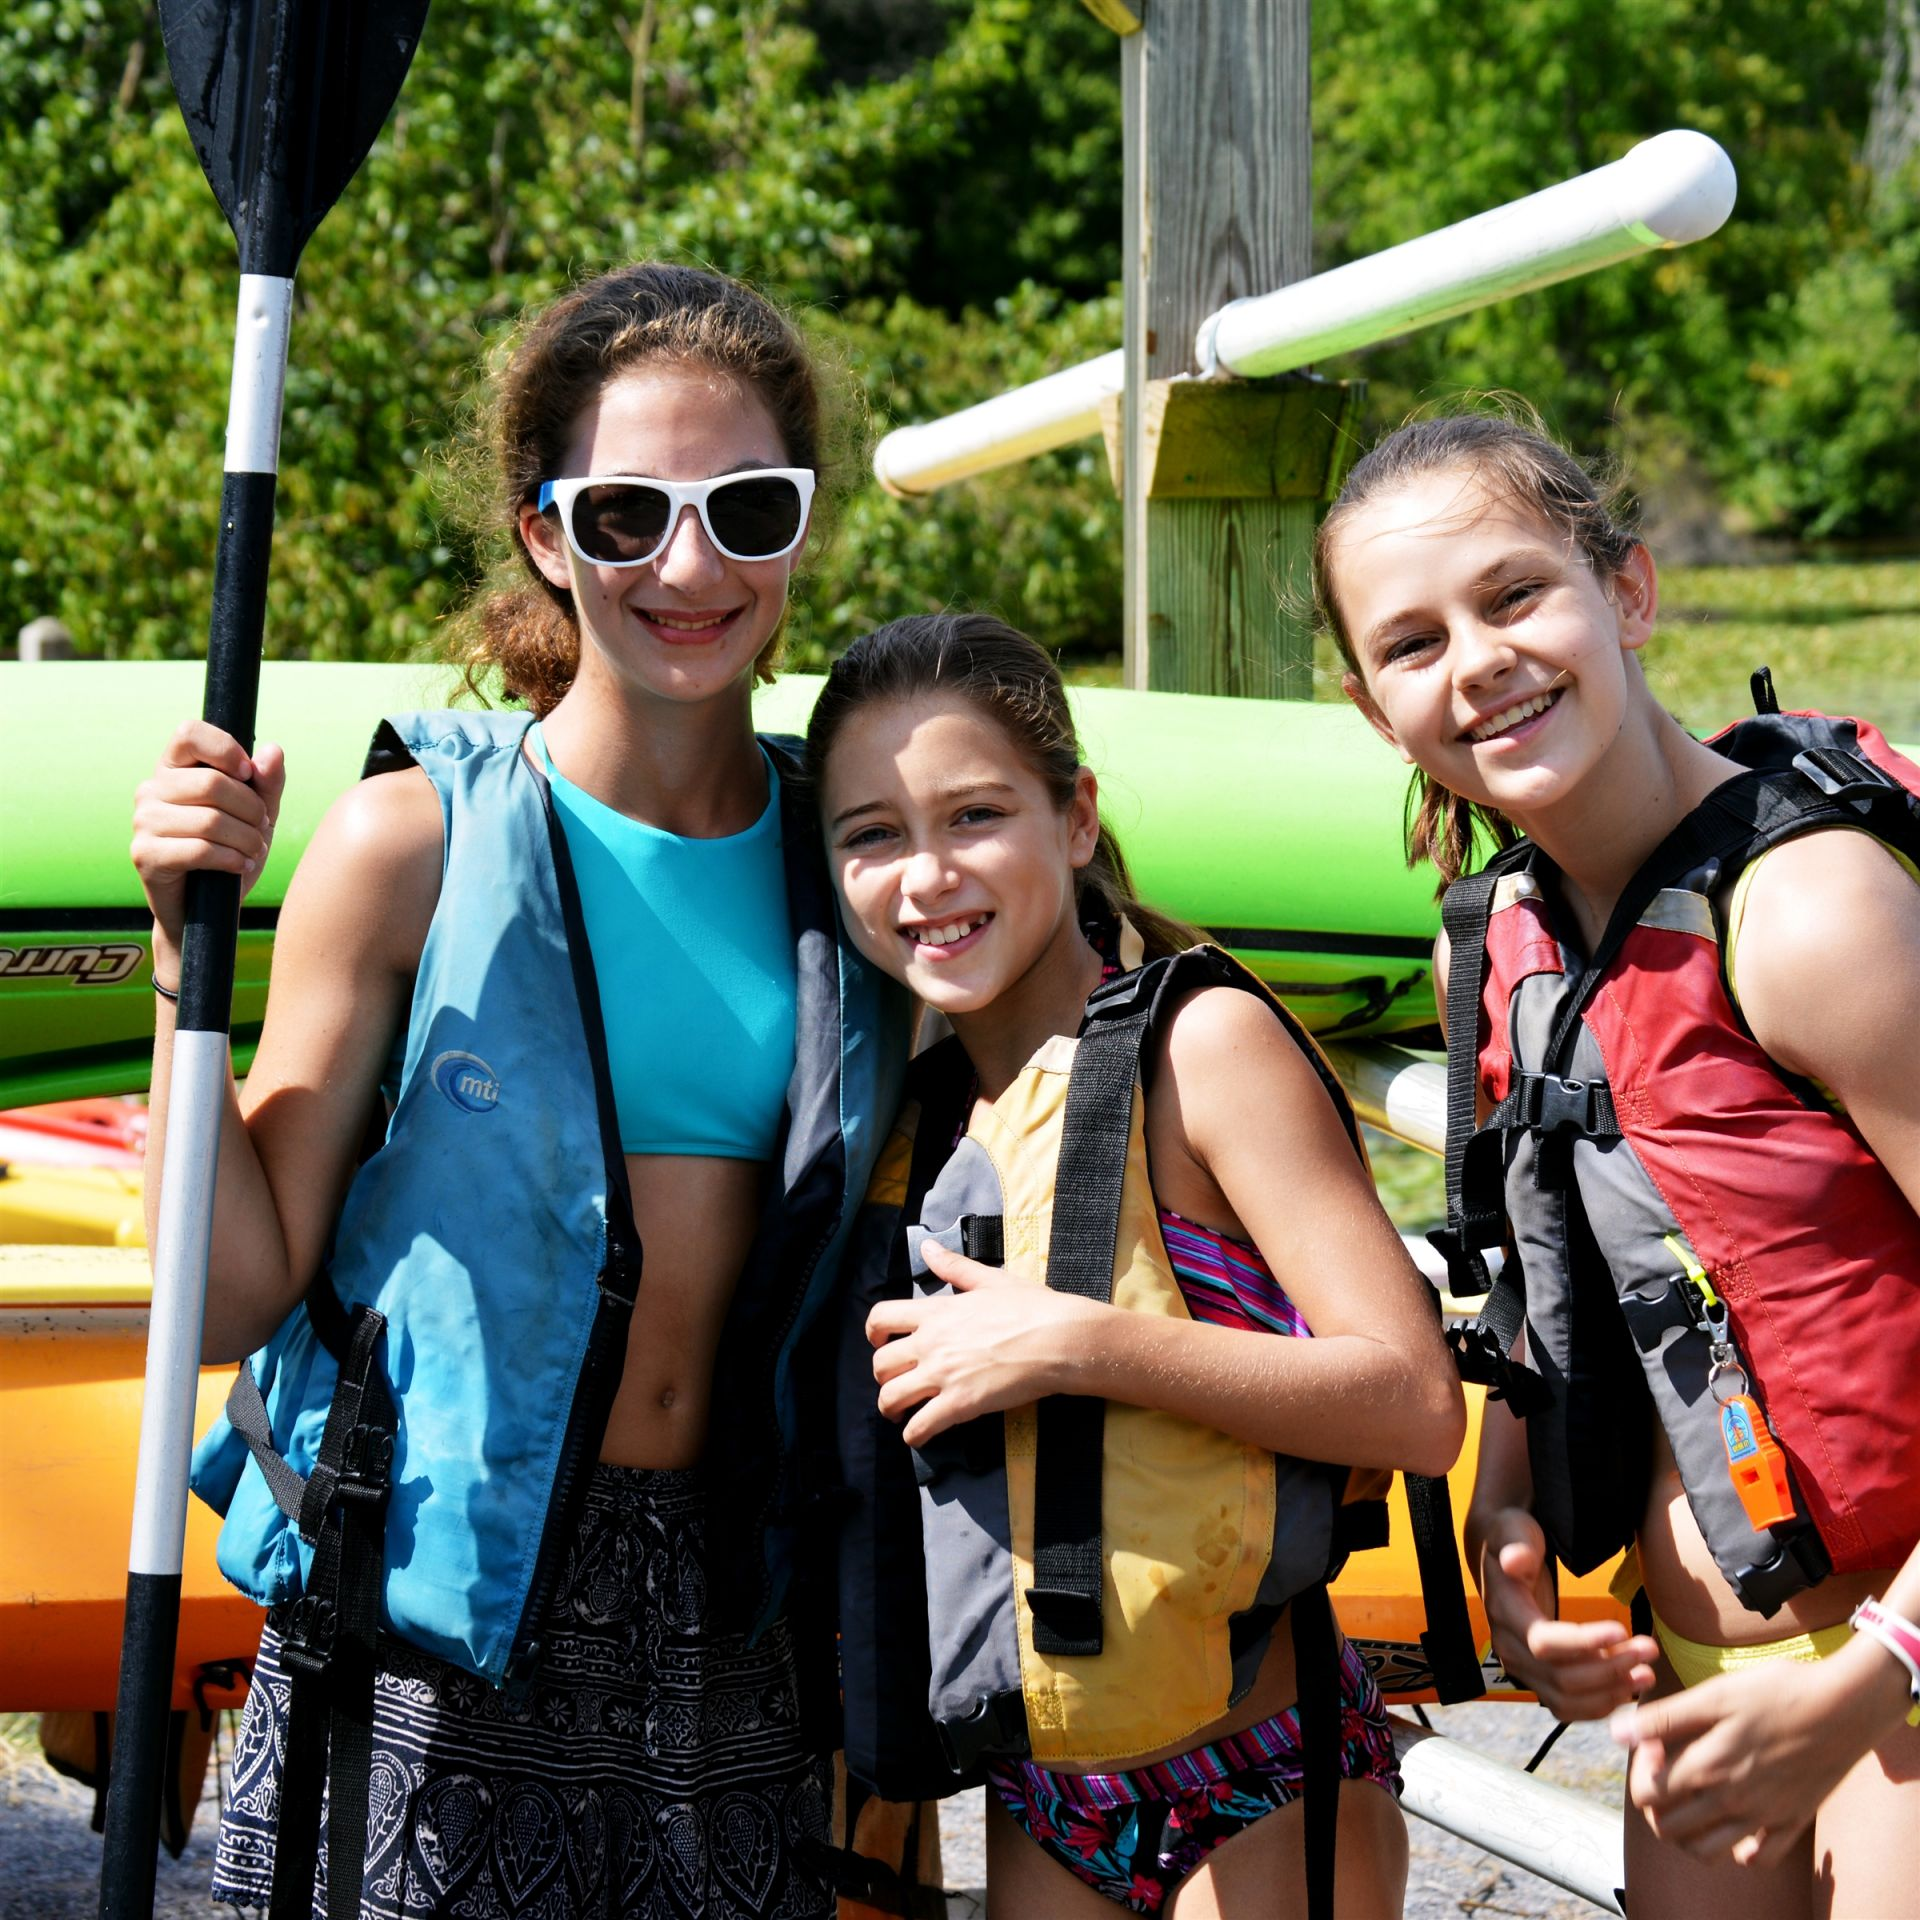 Sunday field trips are to enjoyable locations, such as an amusement park, nearby lakes for boating, and state parks for swimming and exploring.